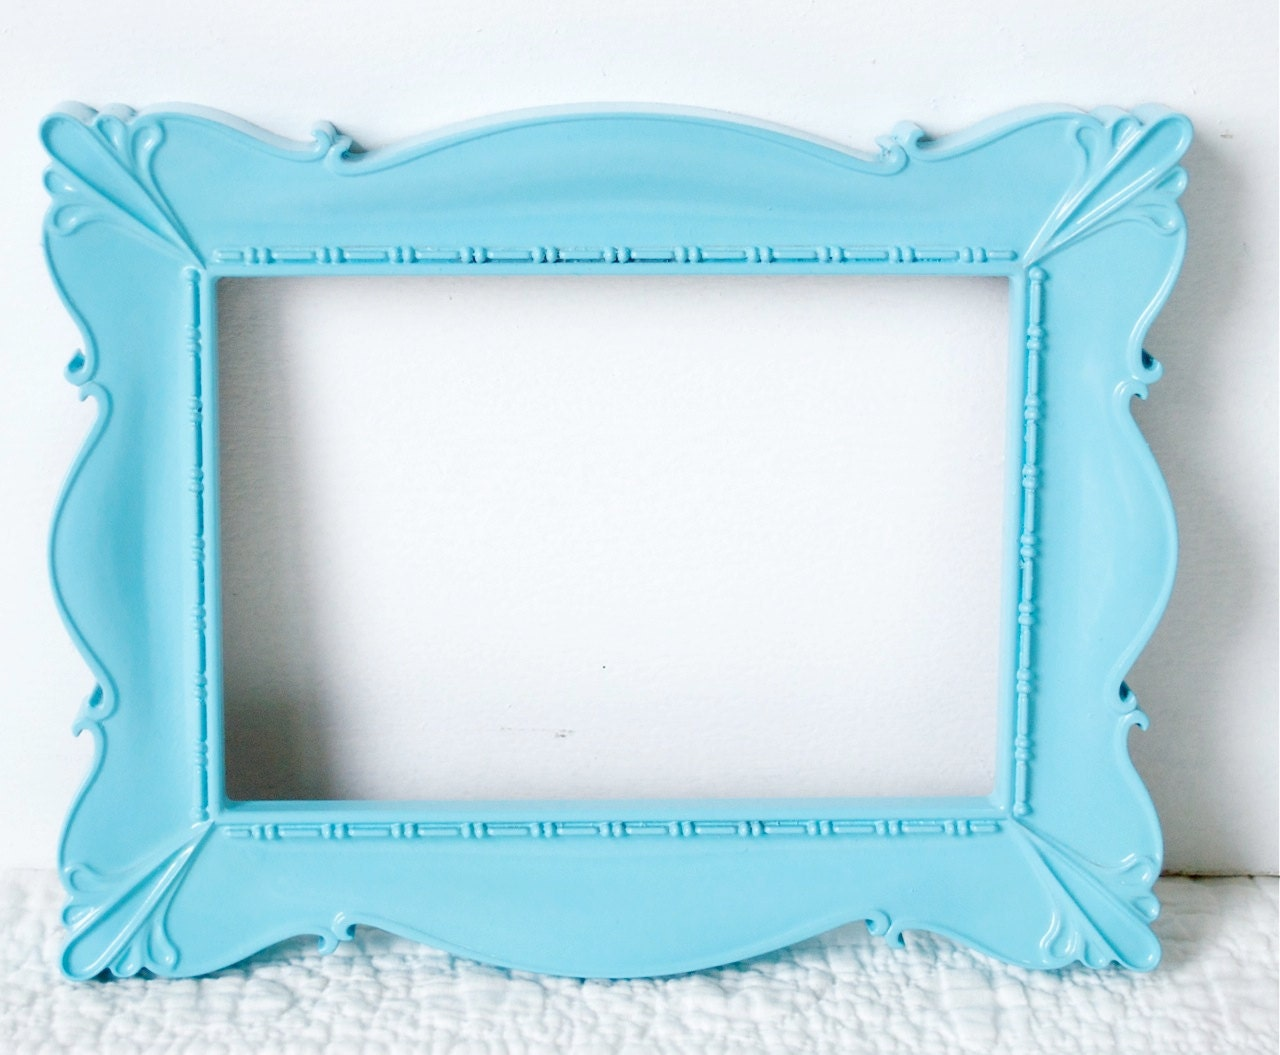 Vintage Empty Frame In Turquoise Blue